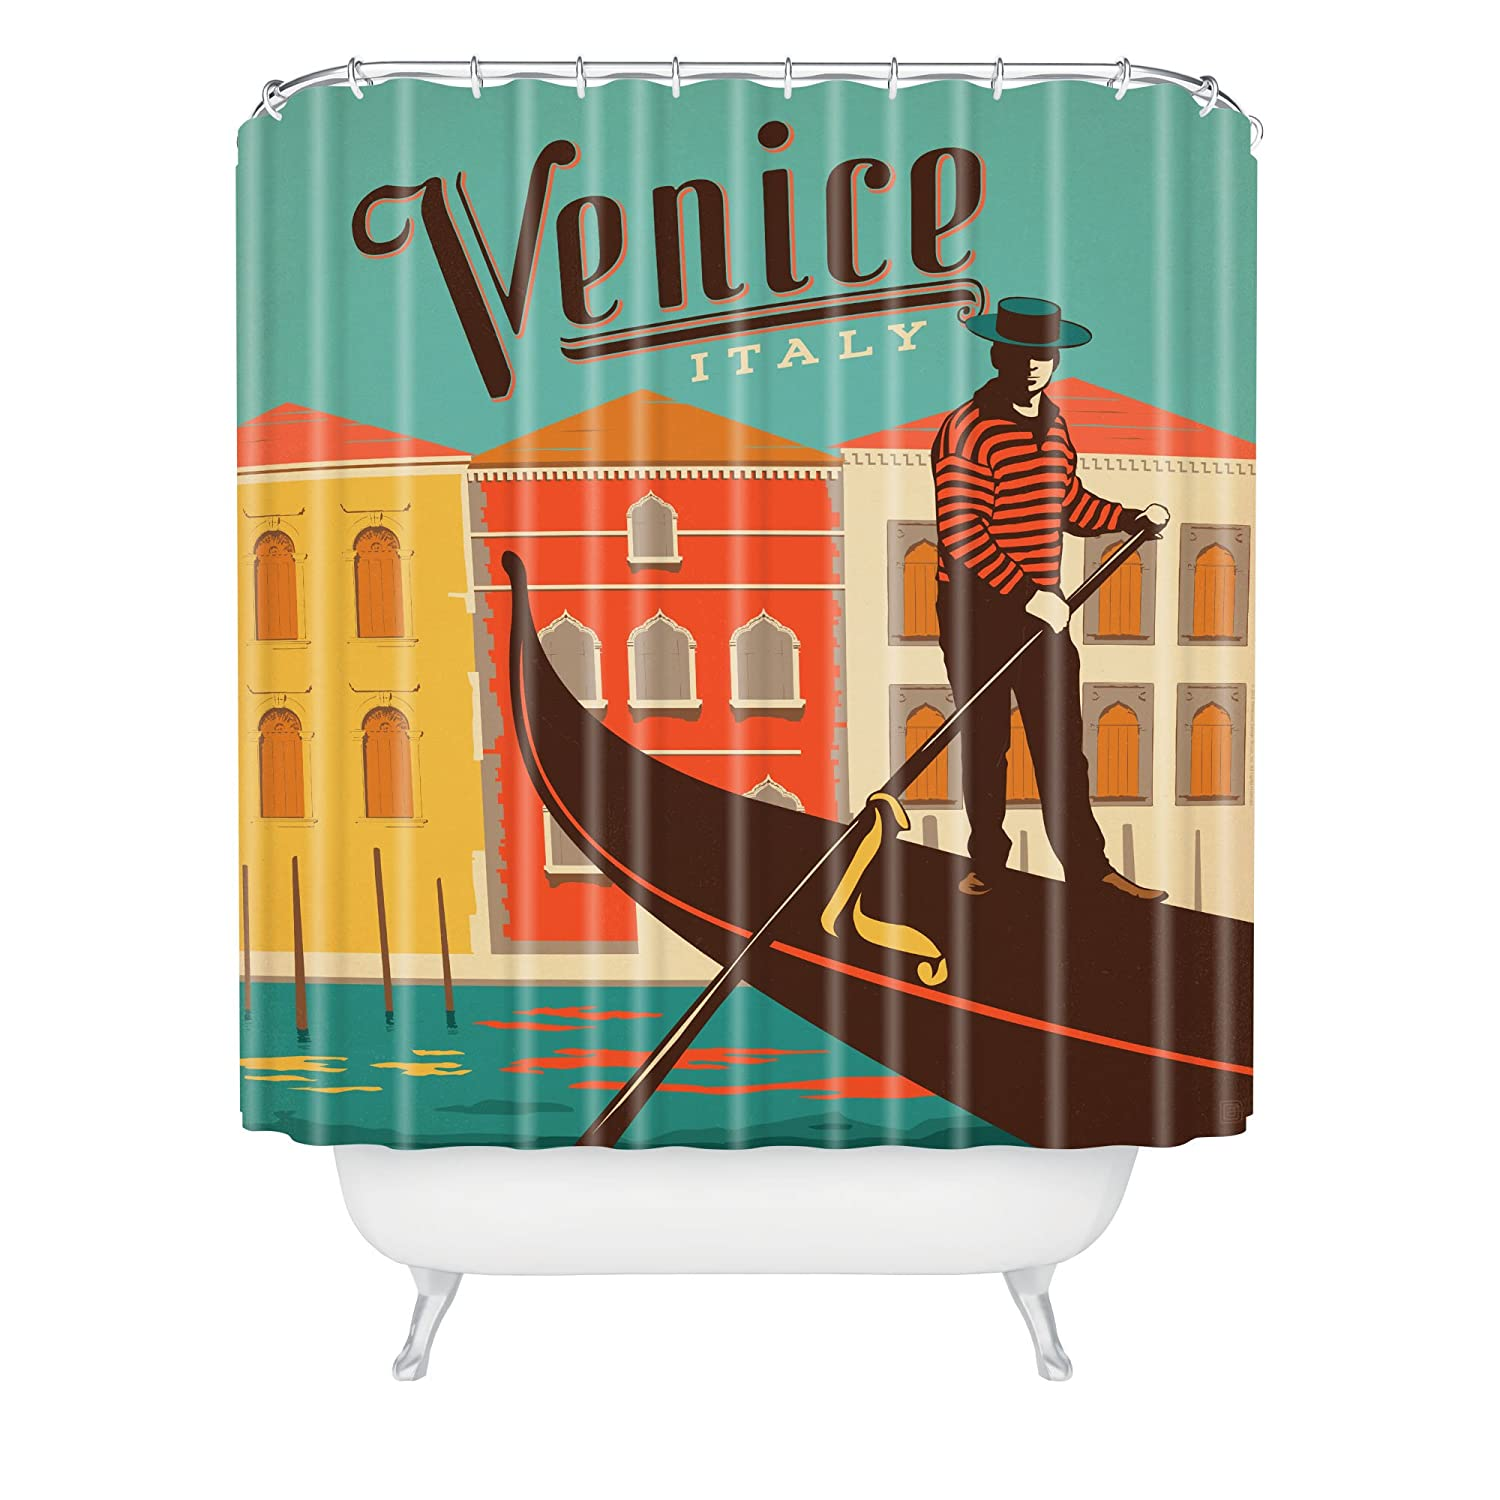 Deny Designs Anderson Design Group Madrid Shower Curtain 69 x 72 69 x 72 14814-shocur